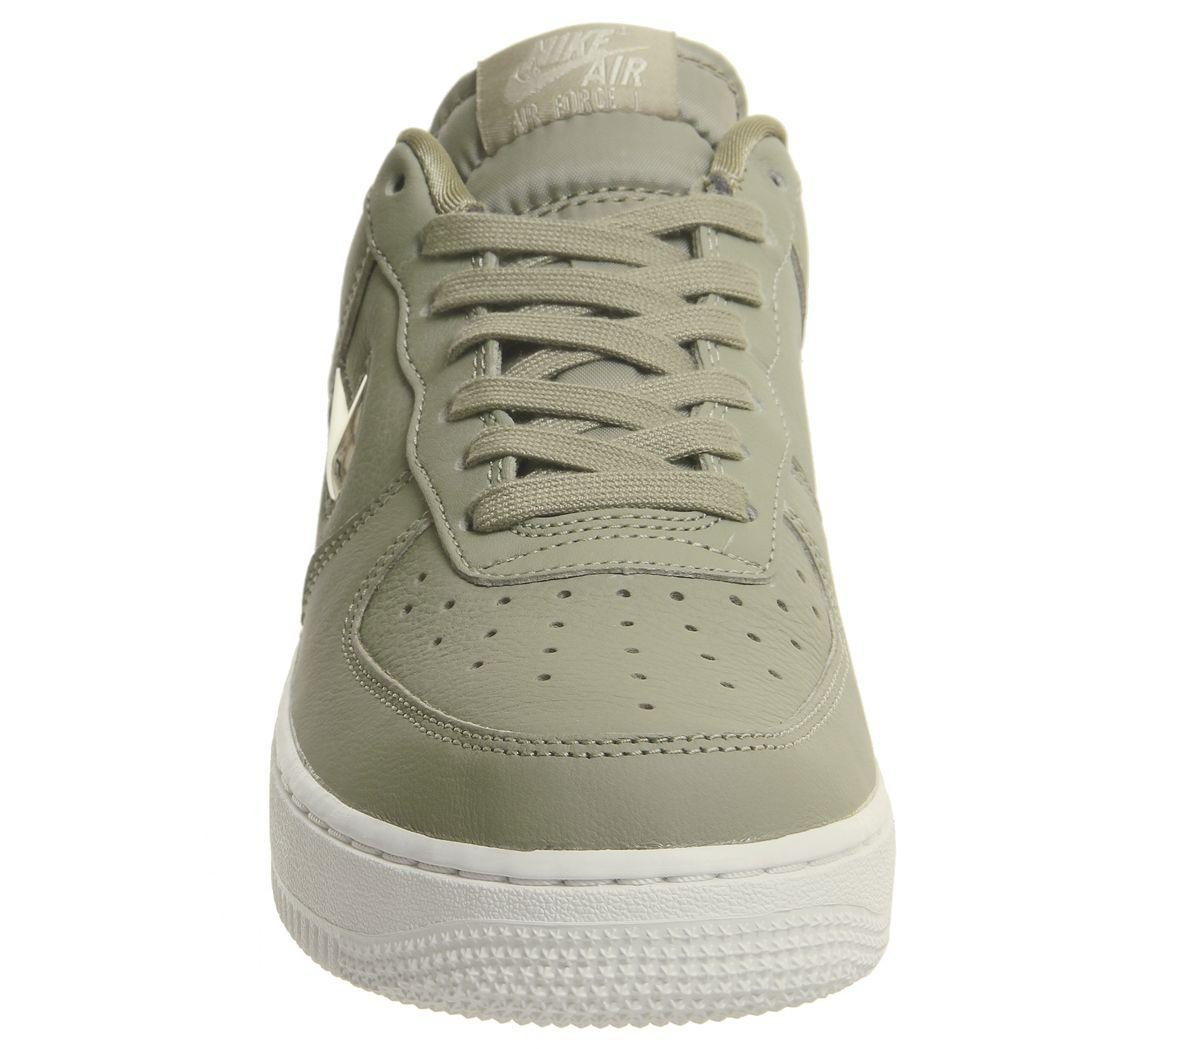 Nike Leather Air Force 1 Jewel Trainers